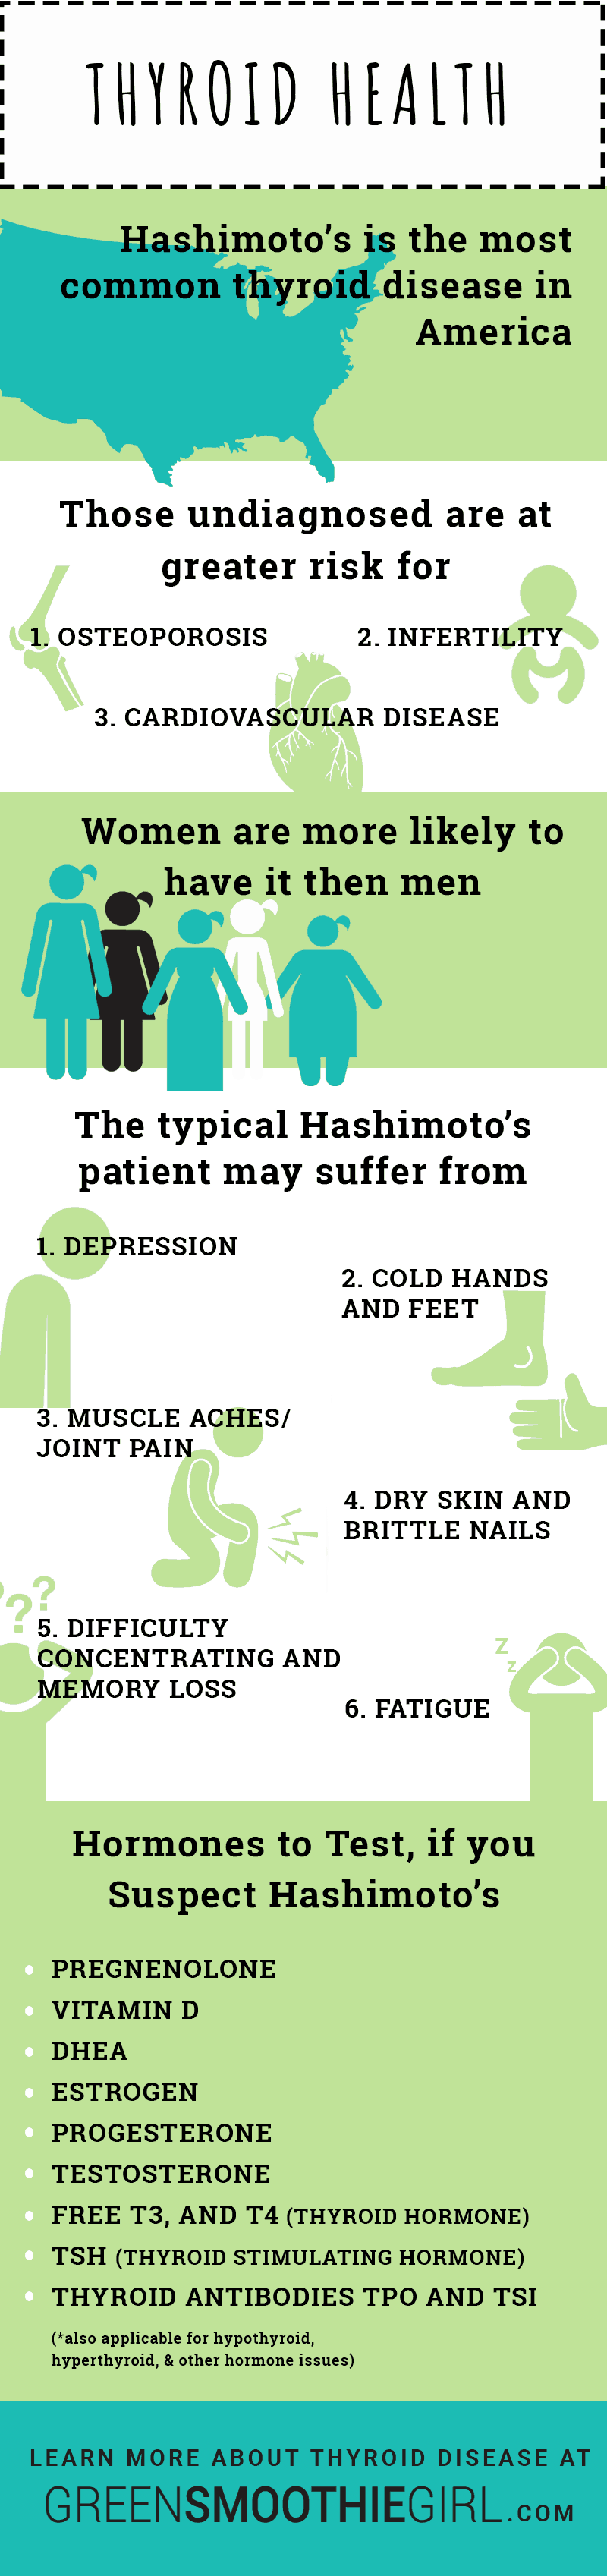 Infographic: Green Smoothies for Thyroid Health? My Hashimotos Journey